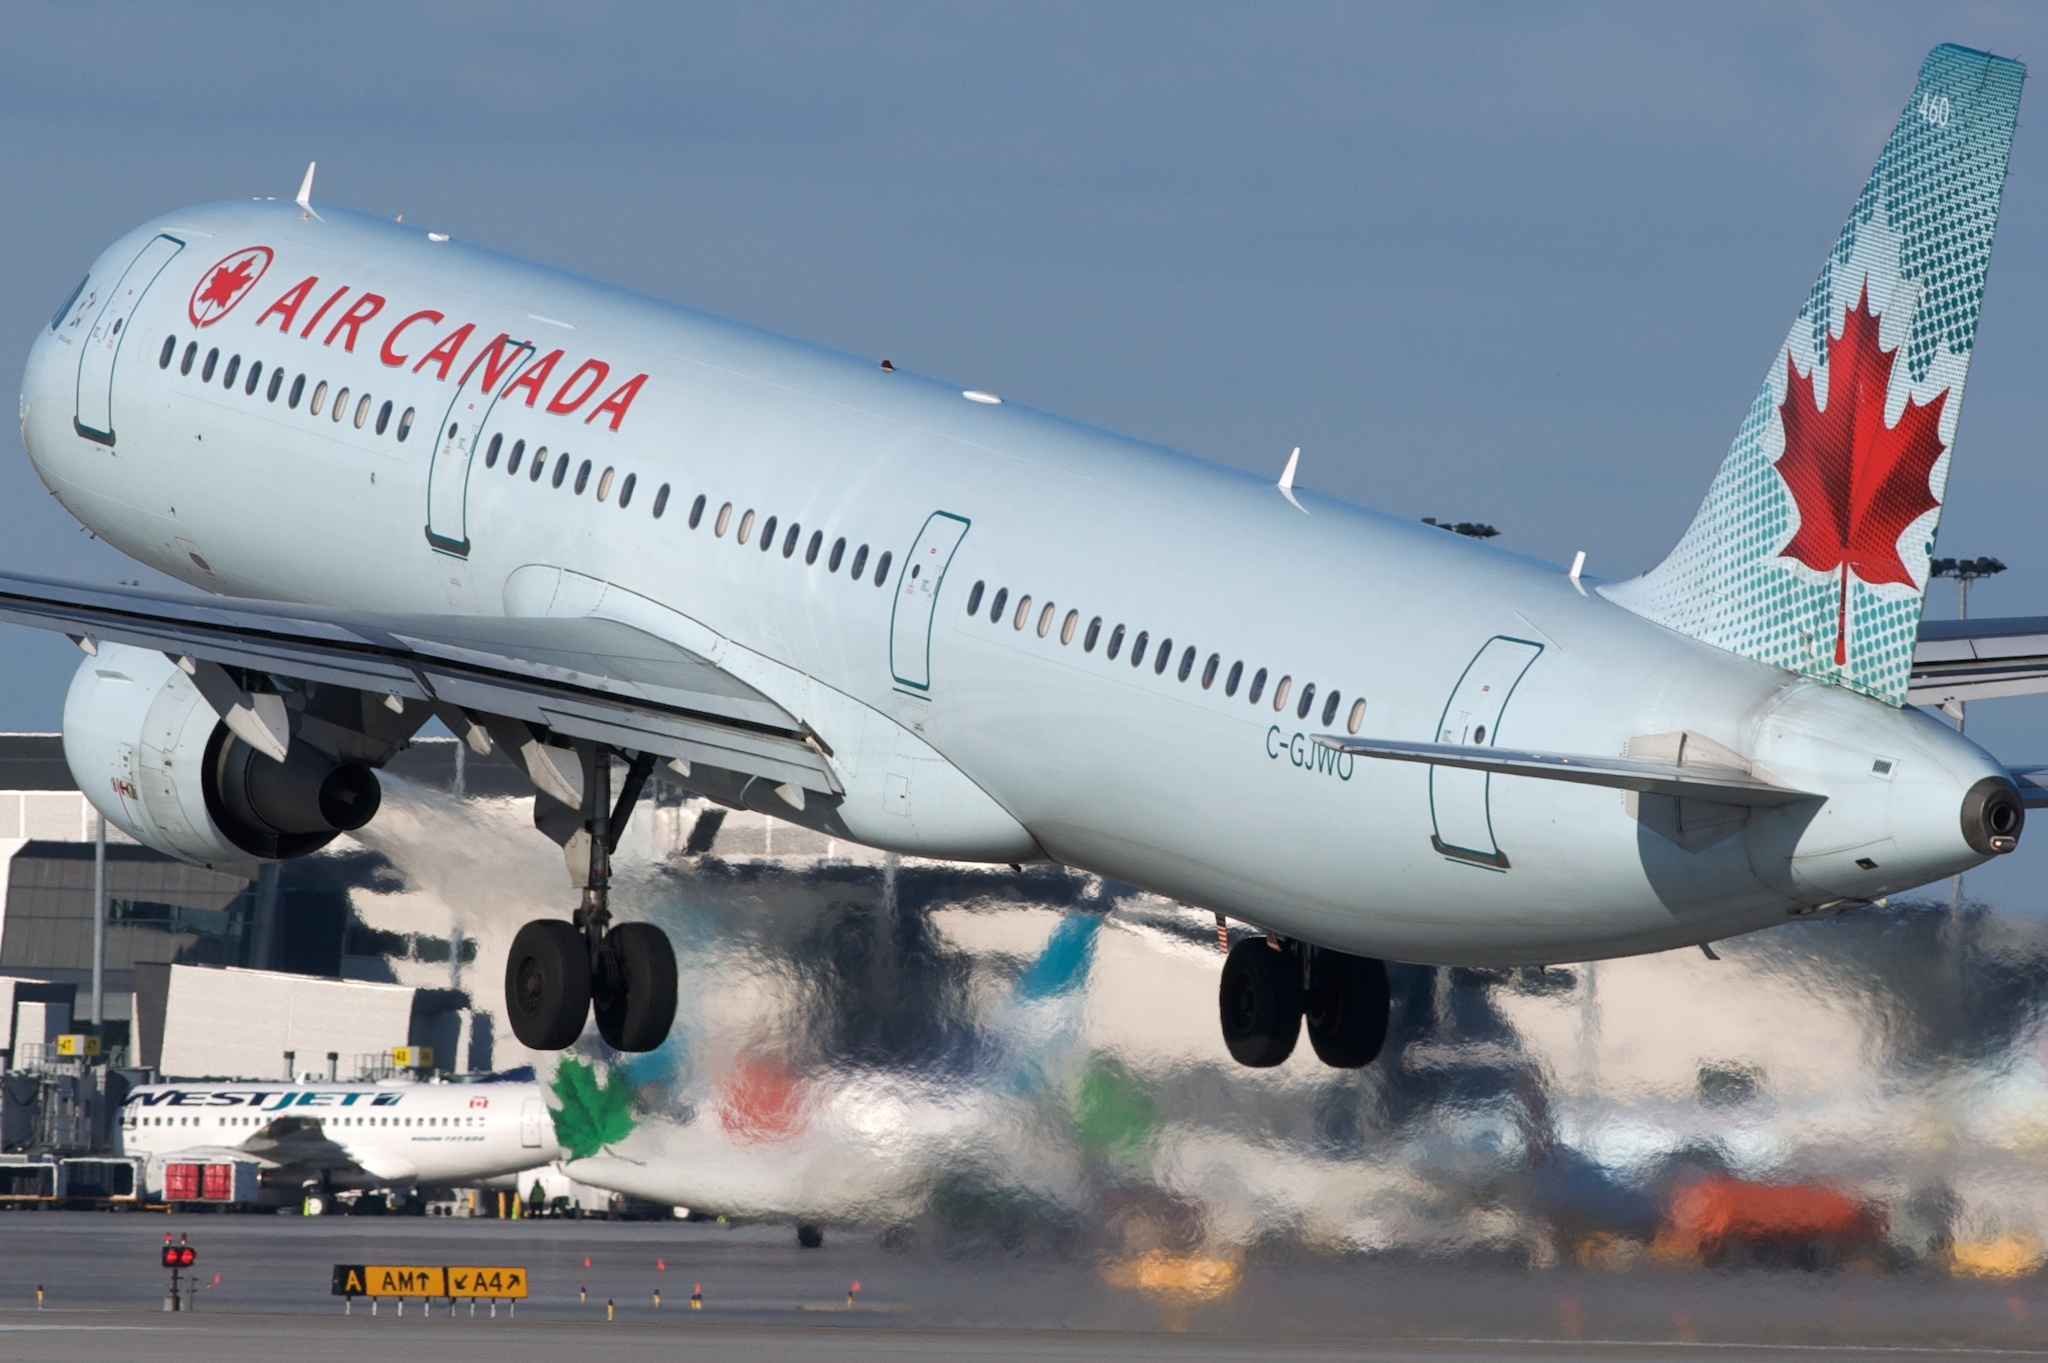 Air Canada A321 C-GJWO par BriYYZ sous (CC BY-SA 2.0) https://www.flickr.com/photos/bribri/4491592027/ https://creativecommons.org/licenses/by-sa/2.0/